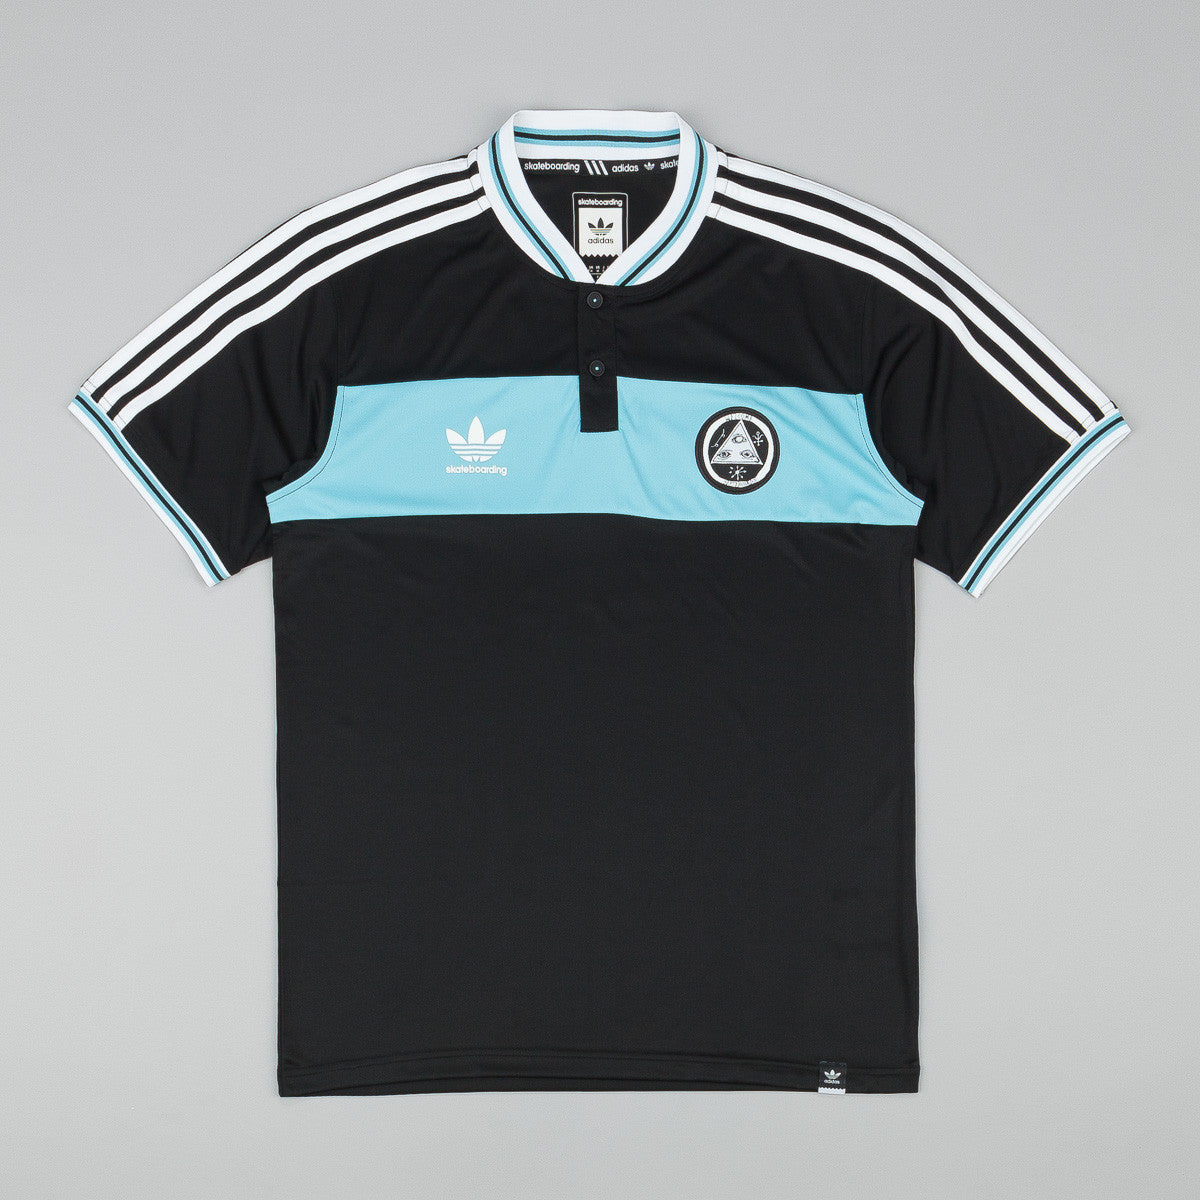 Adidas X Welcome Skateboards Jersey